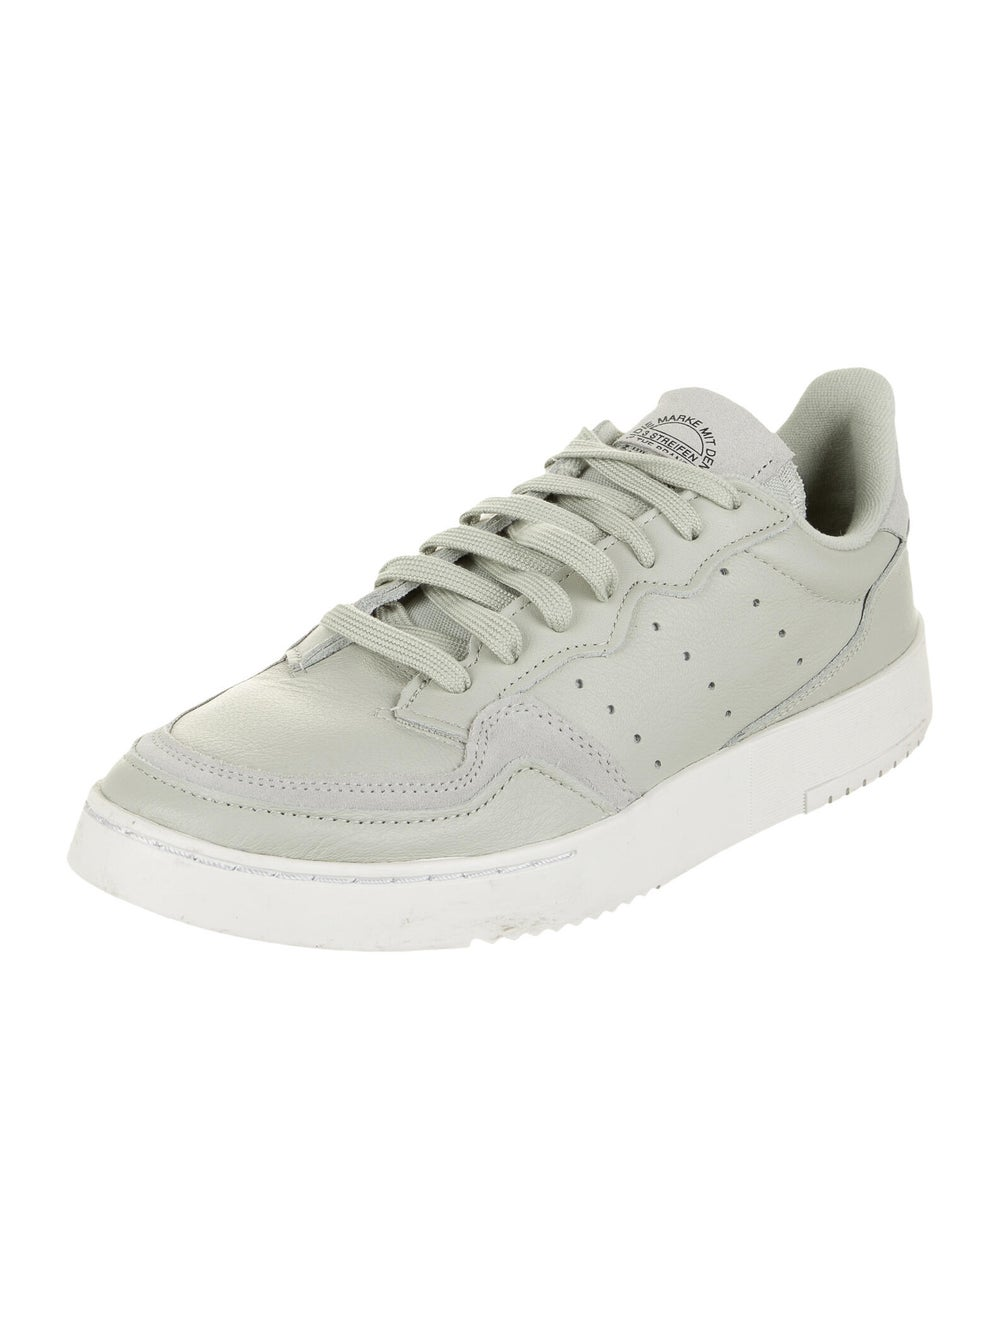 Adidas Leather Athletic Sneakers Green - image 2